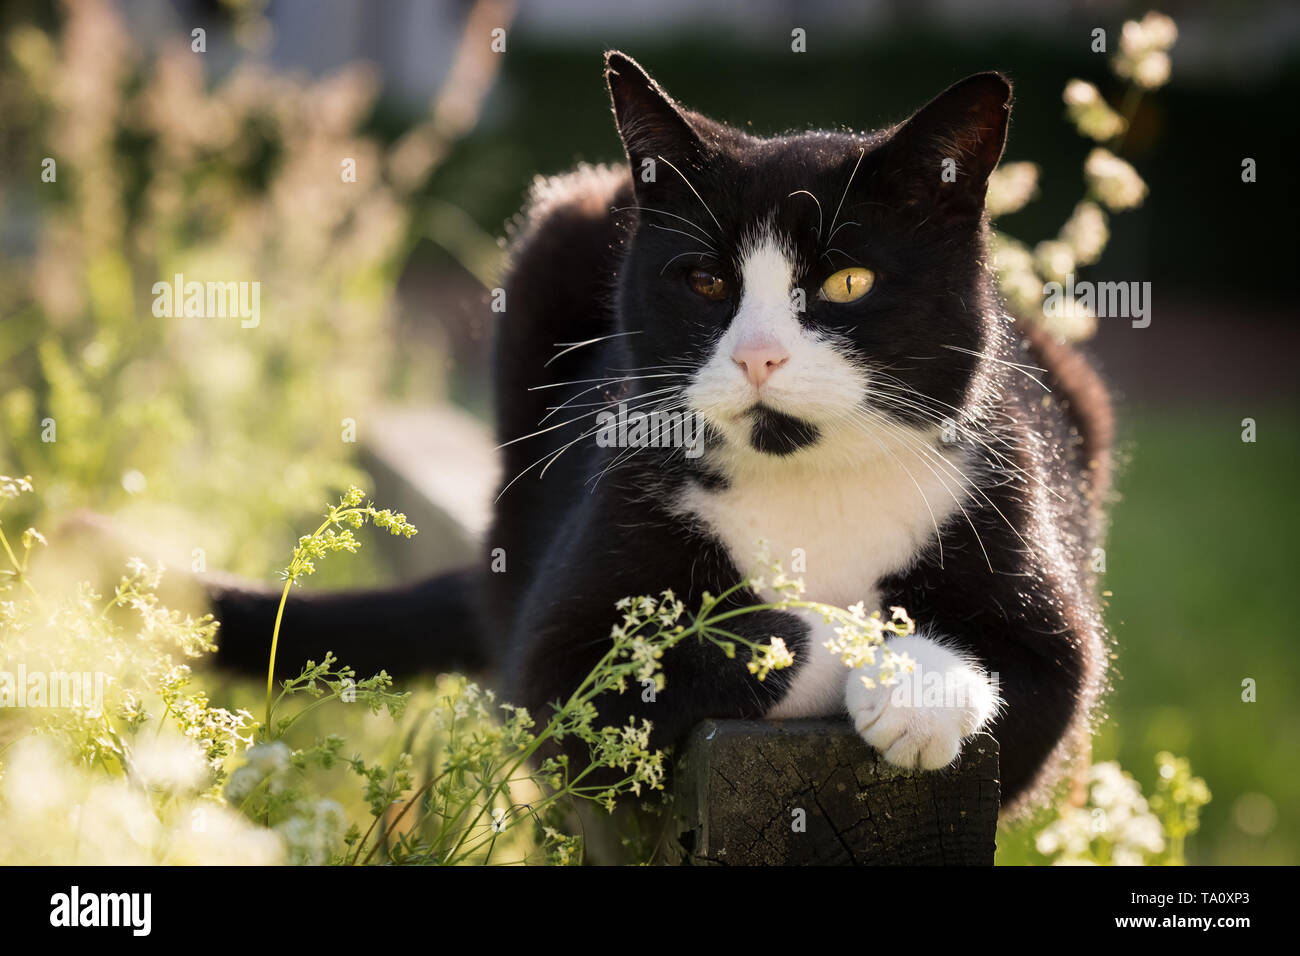 portrait of black and white cat with bicolored eyes enjoying the sun in nature Stock Photo